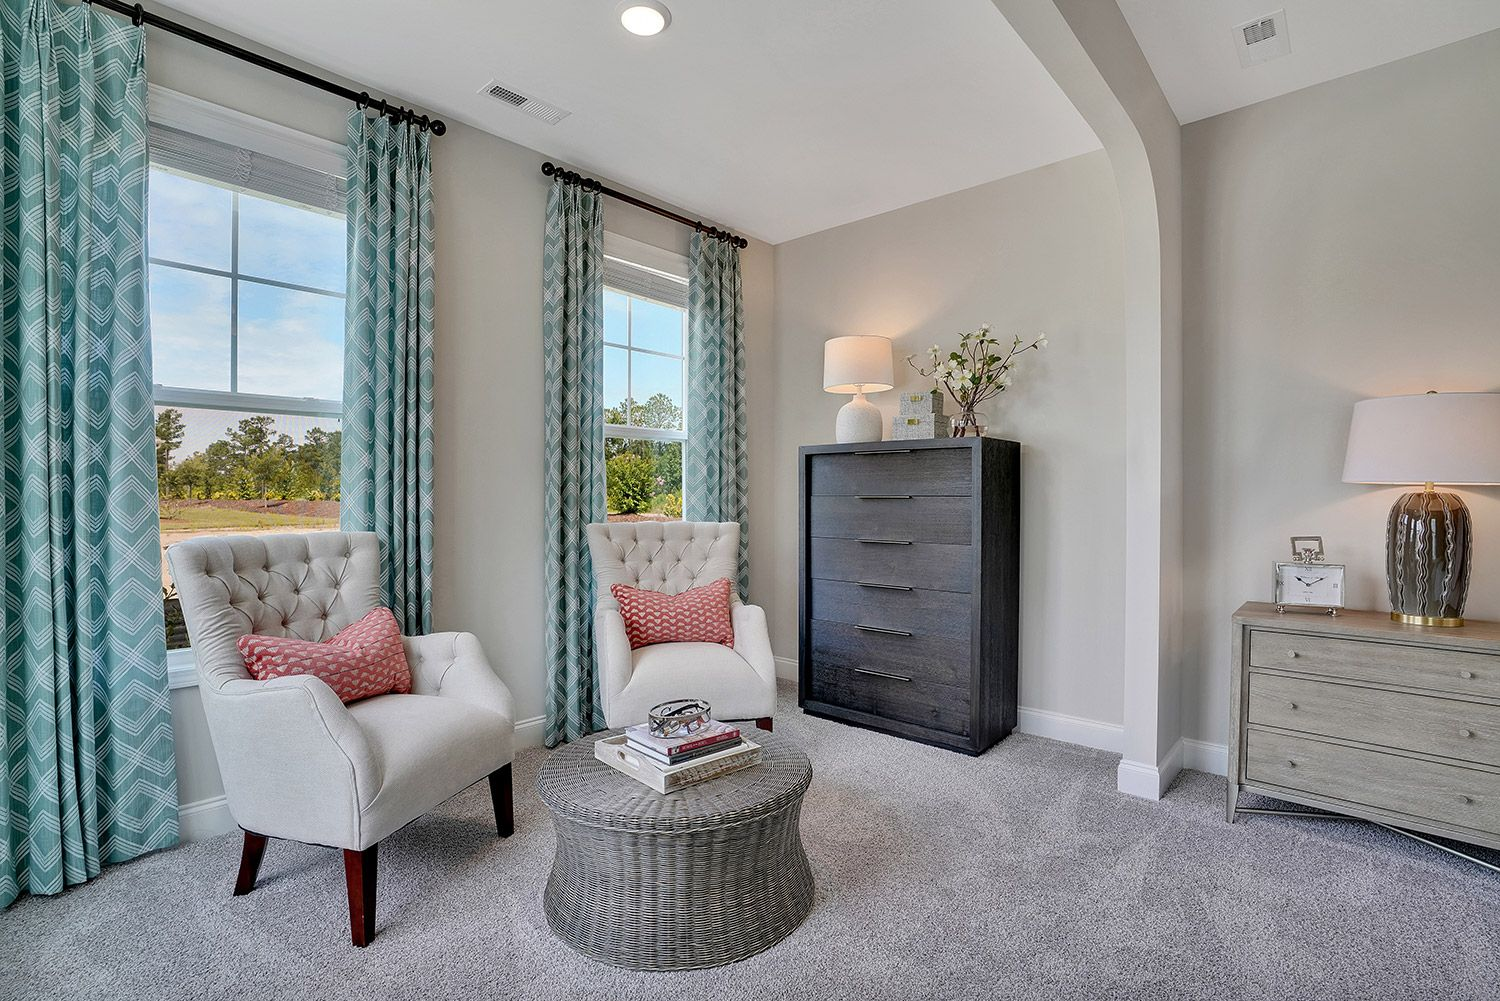 Bedroom featured in the Portico 2020 Craftsman By McKee Homes in Wilmington, NC